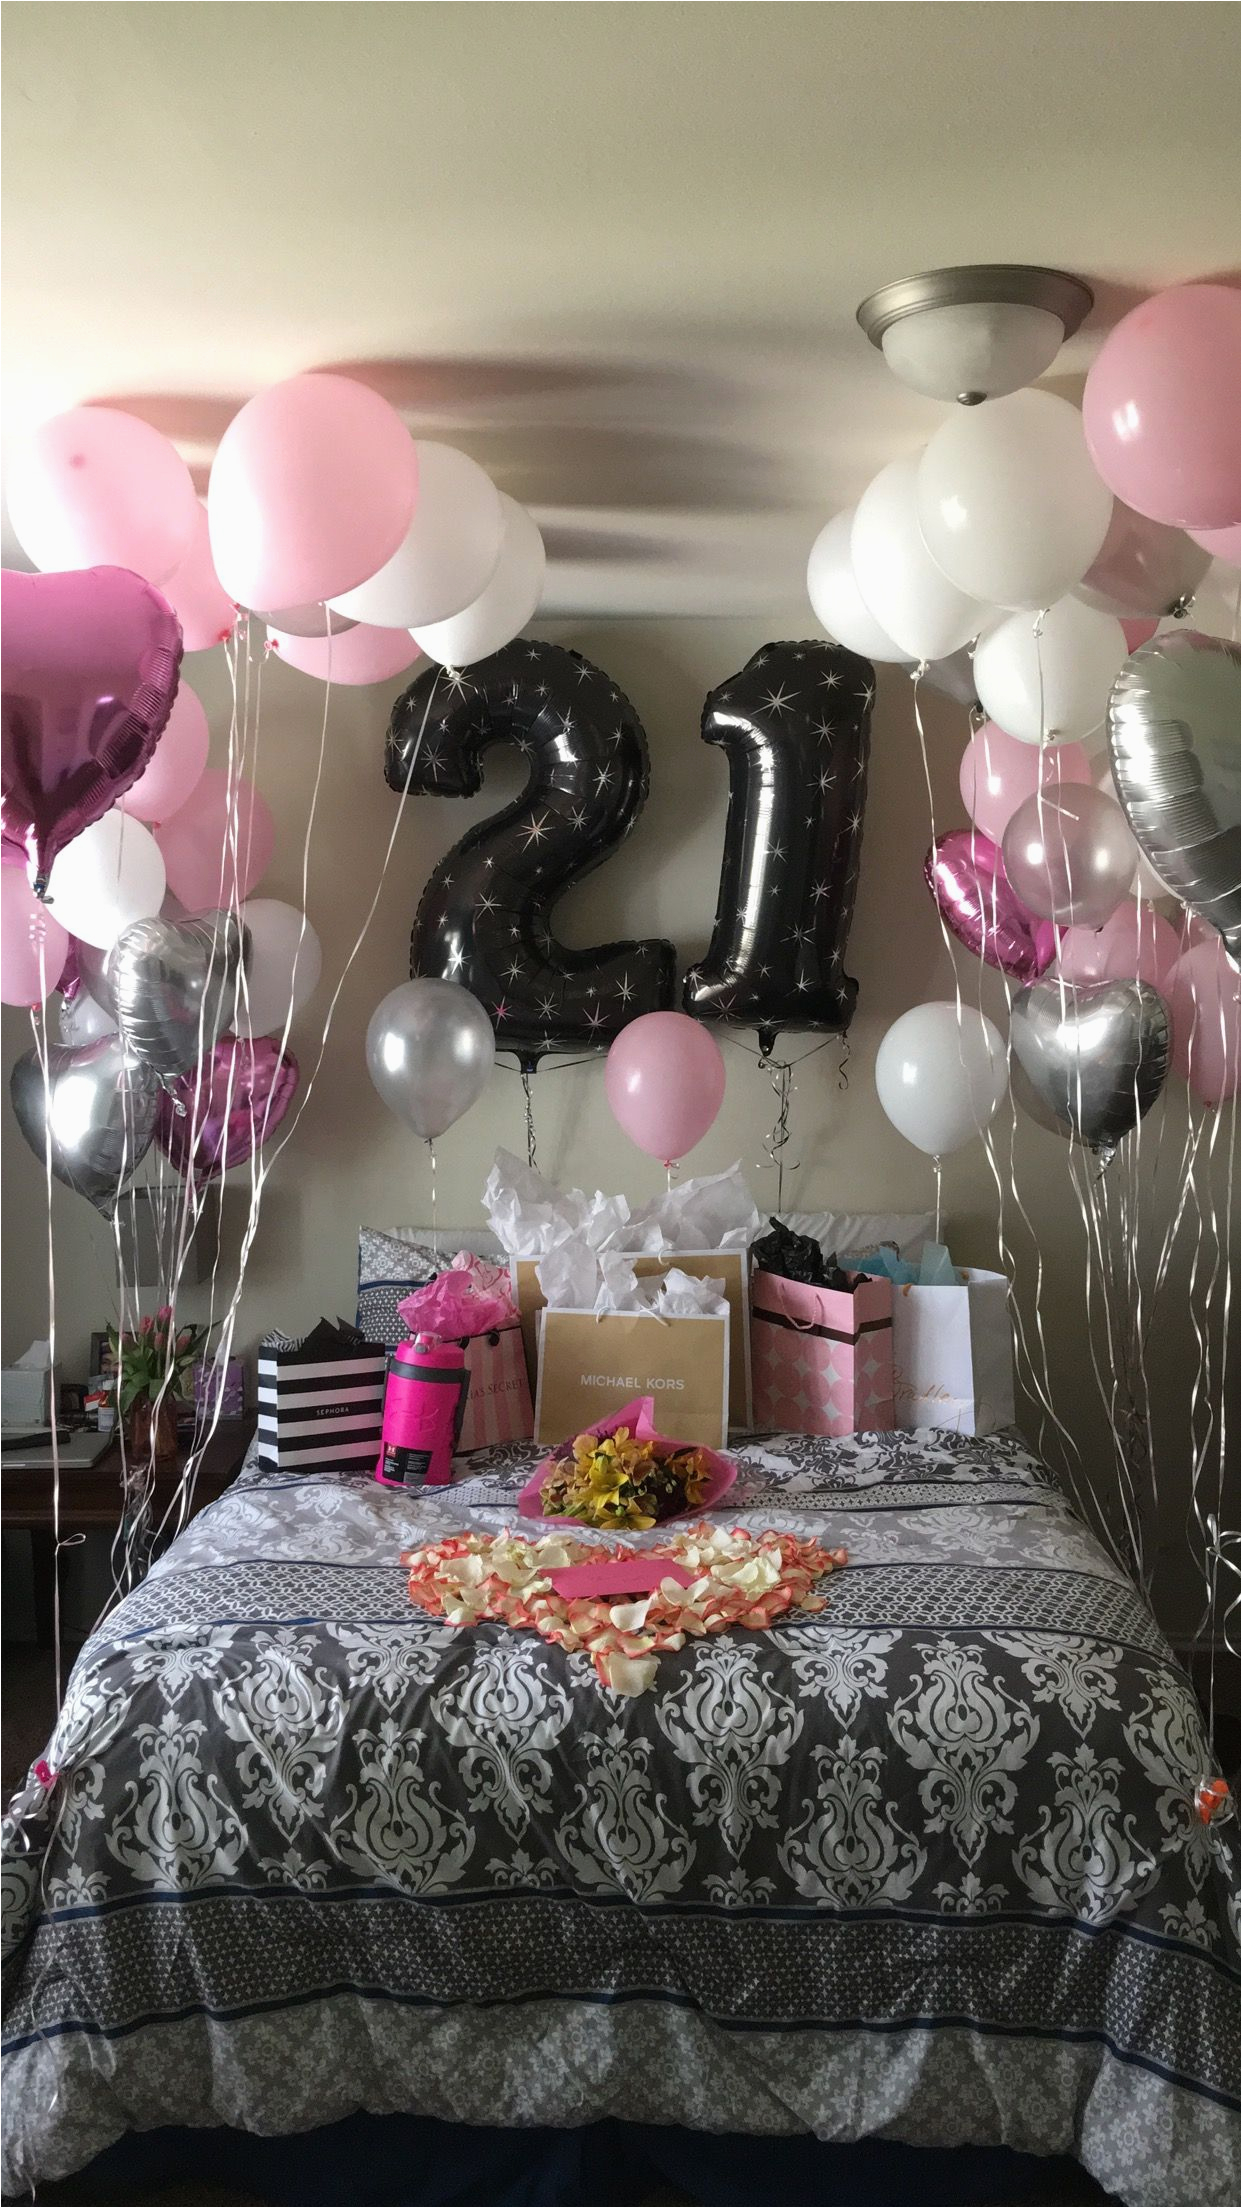 21st birthday surprise girlfriends birthday pinterest